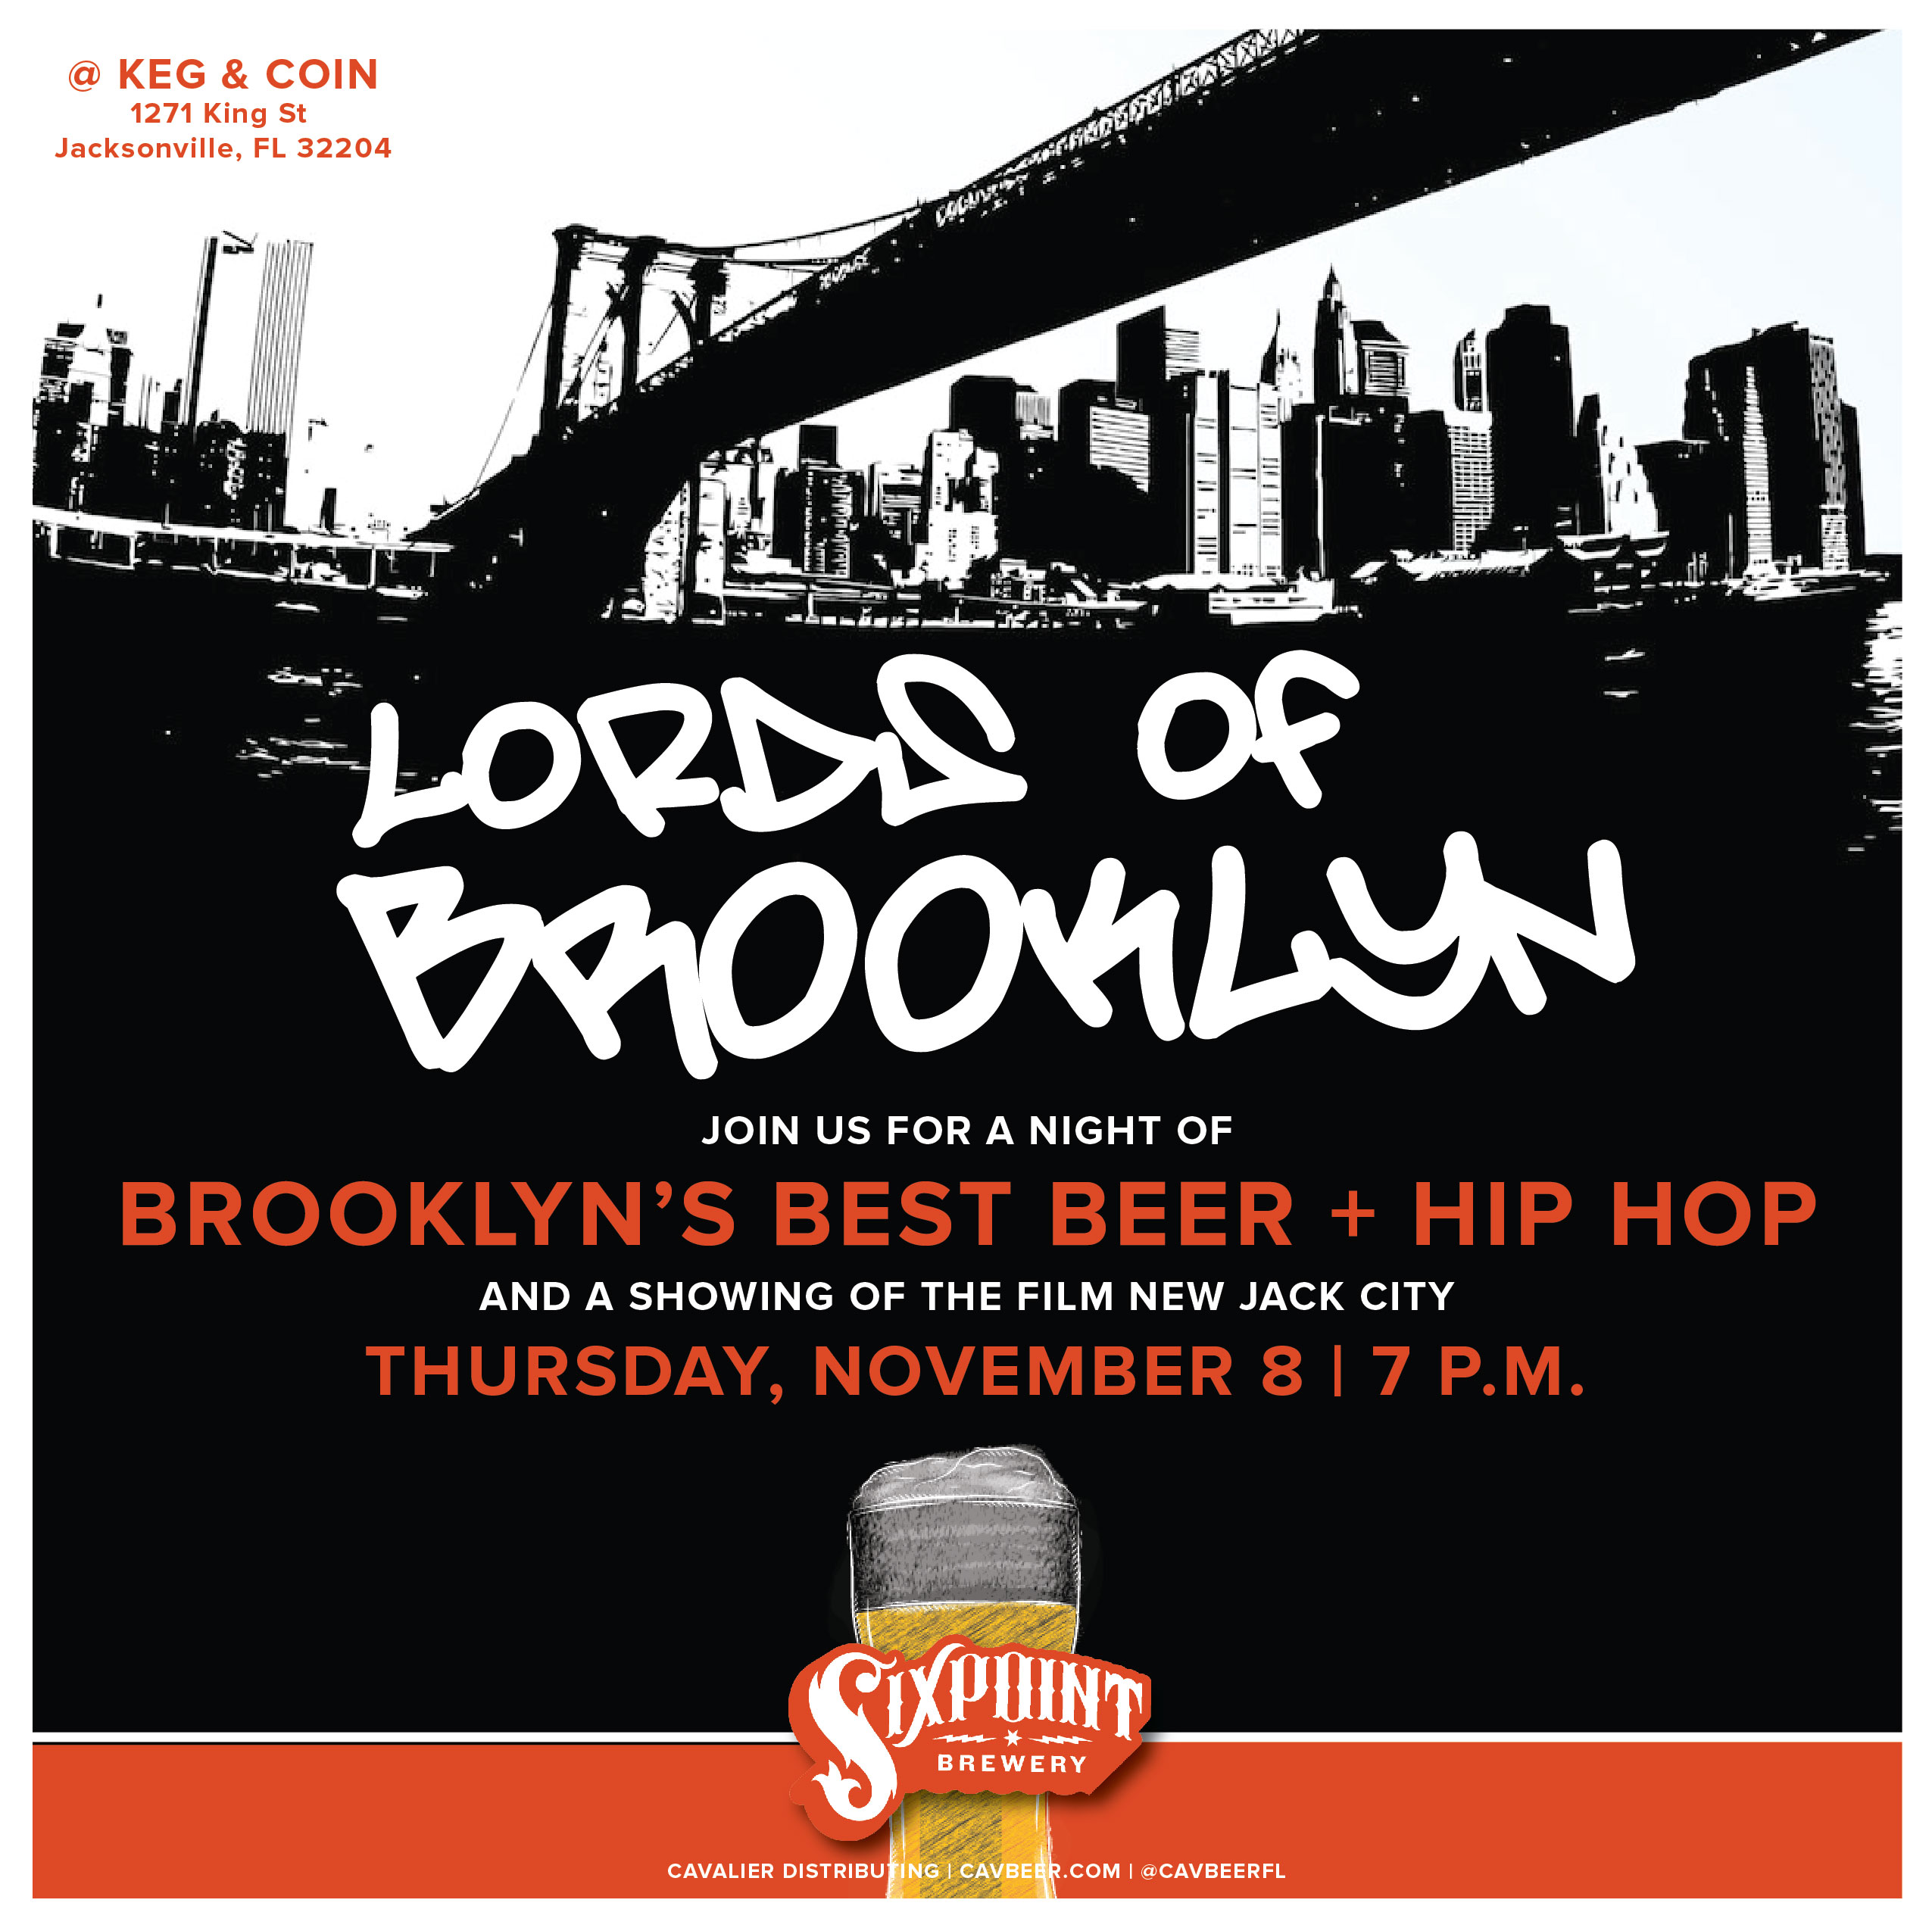 Lords of Brooklyn @ Keg & Coin featuring Sixpoint Brewery